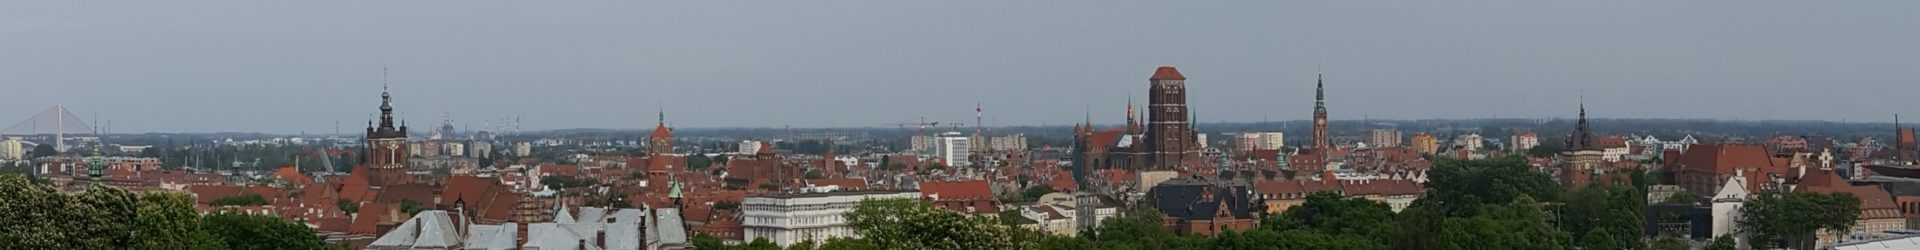 Viewpoints in Gdansk